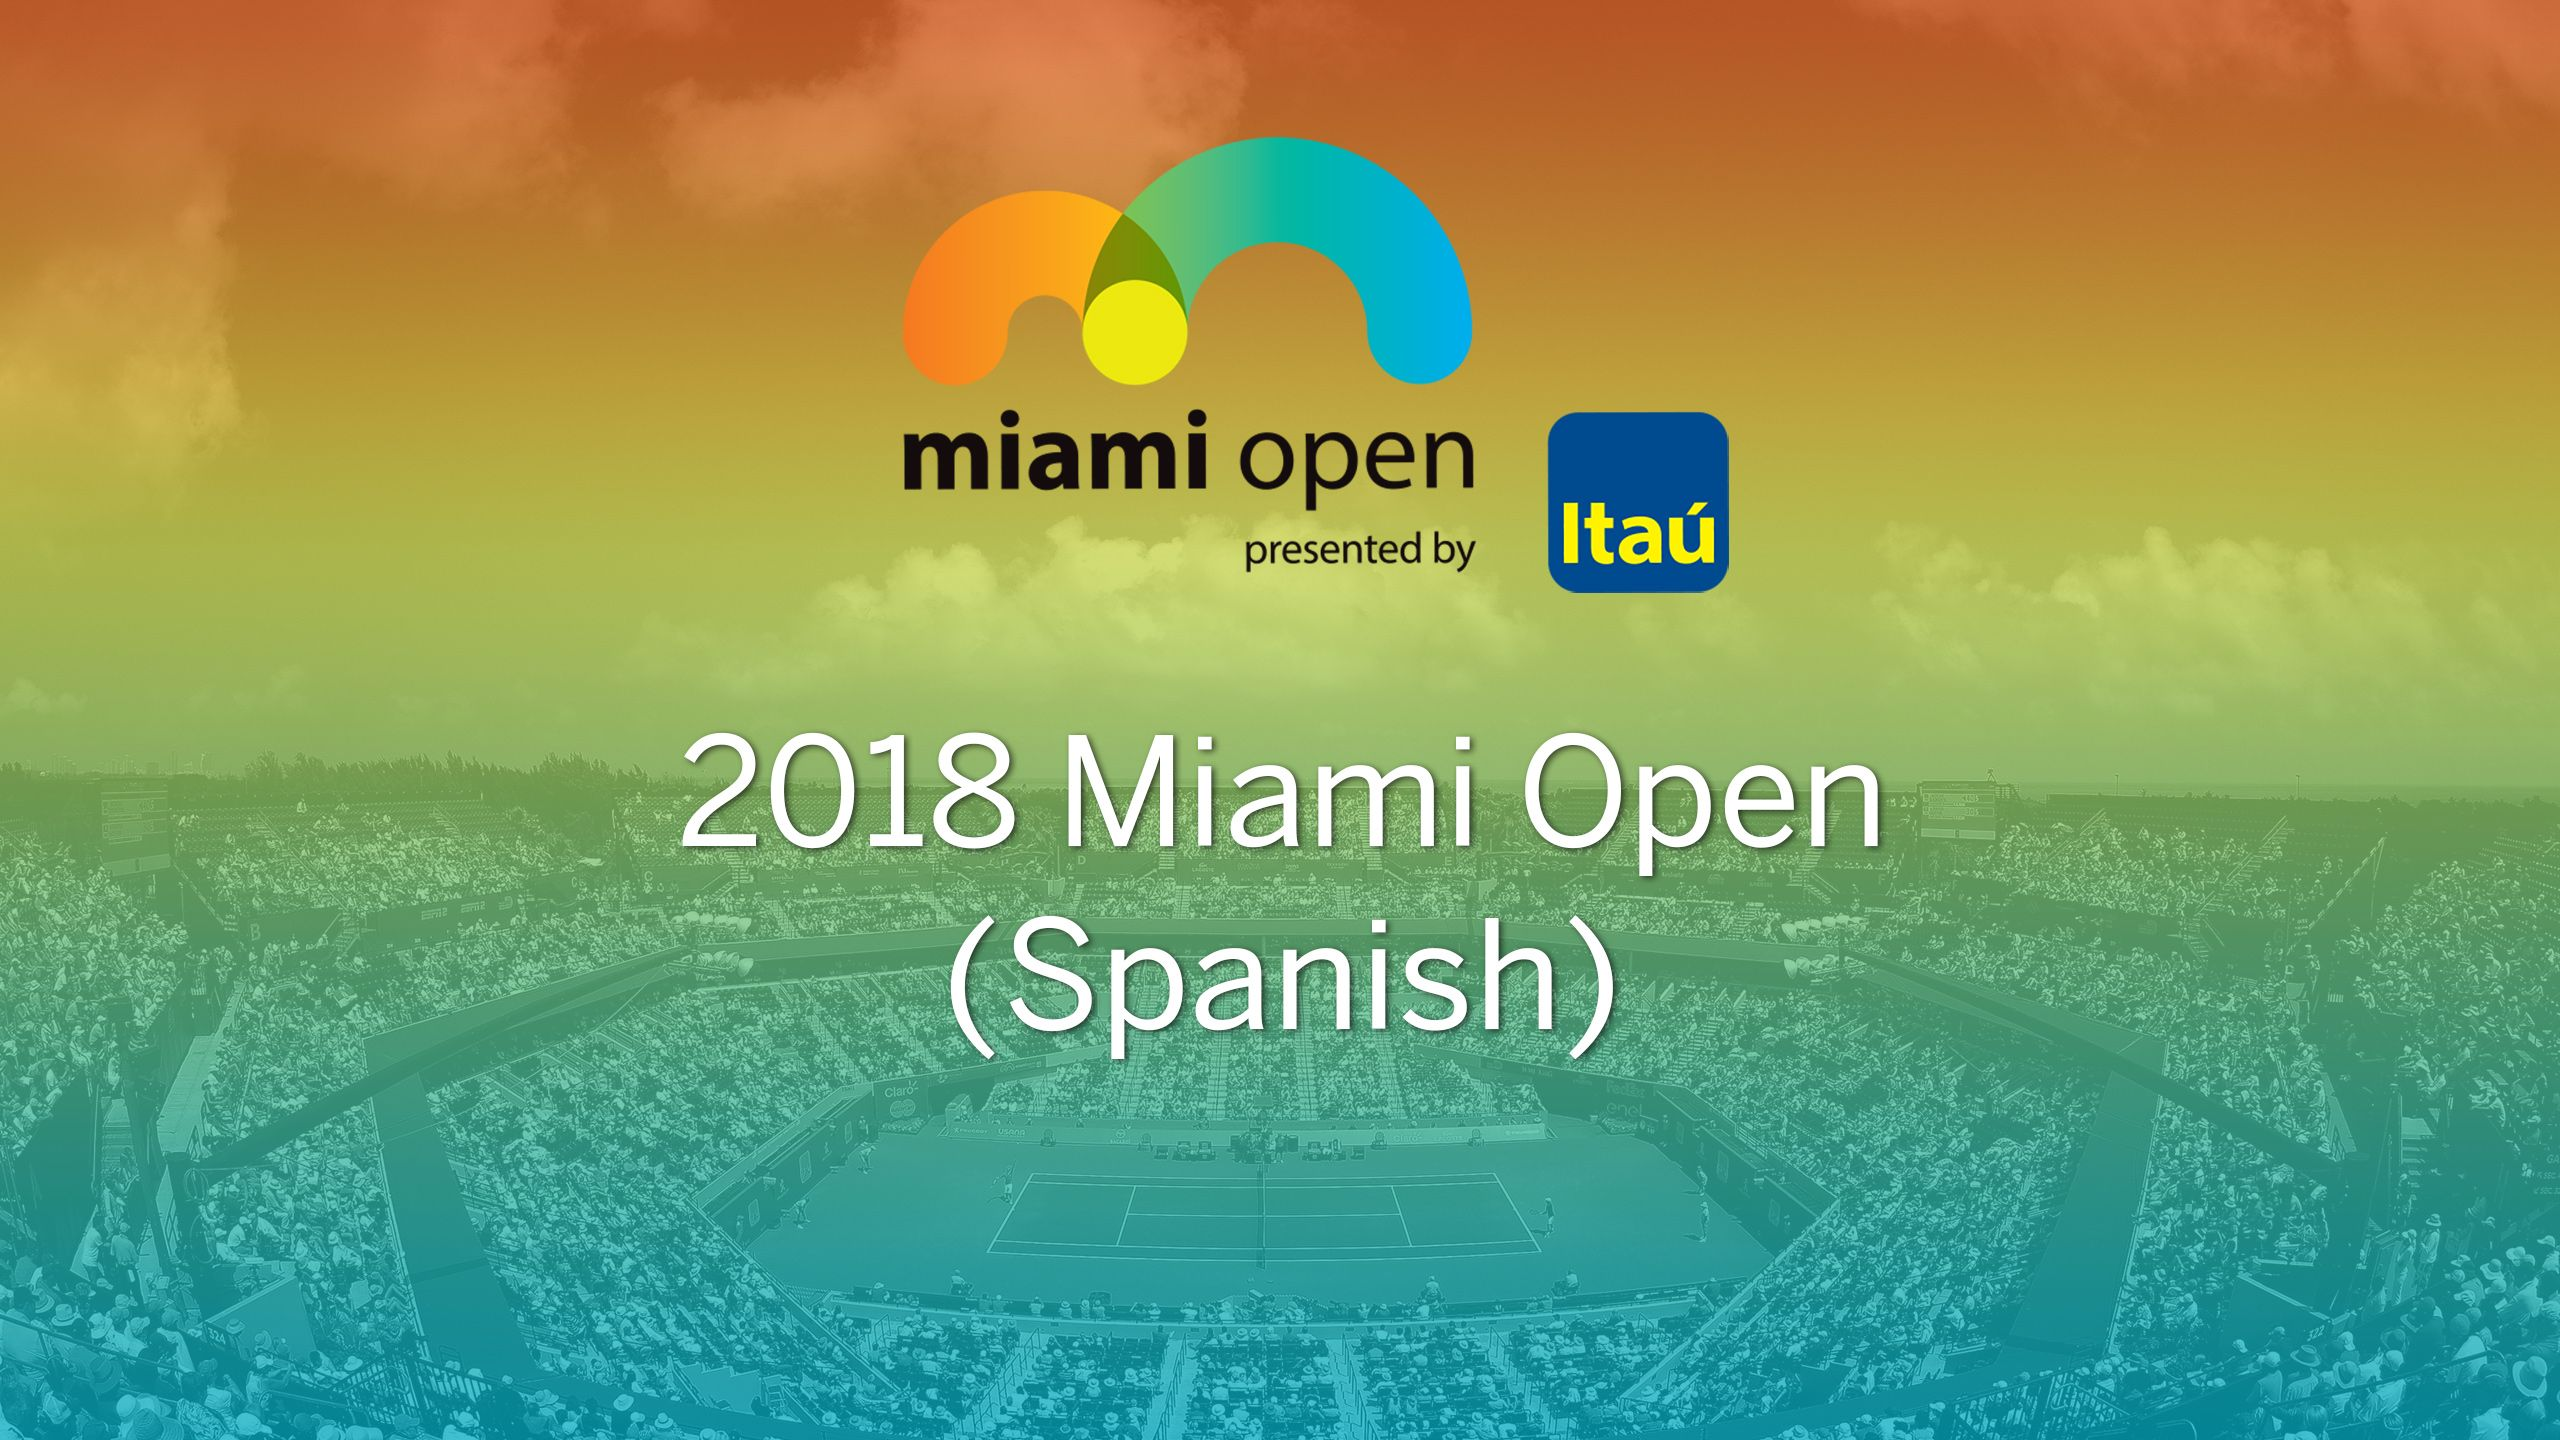 In Spanish - Miami Open (Second Round)